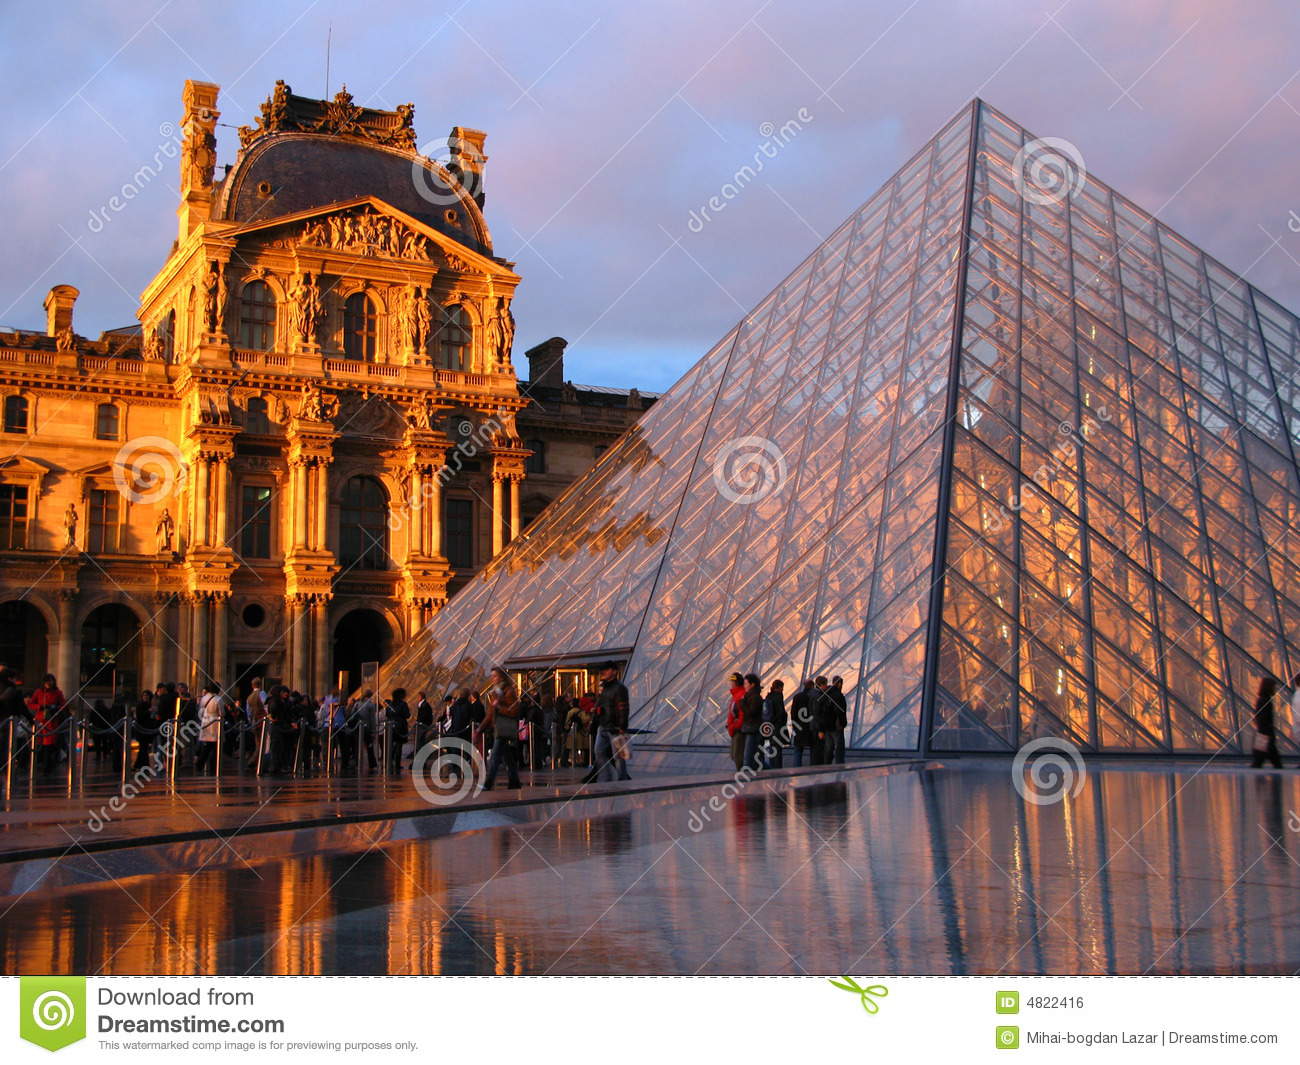 Louvre, Paris, France